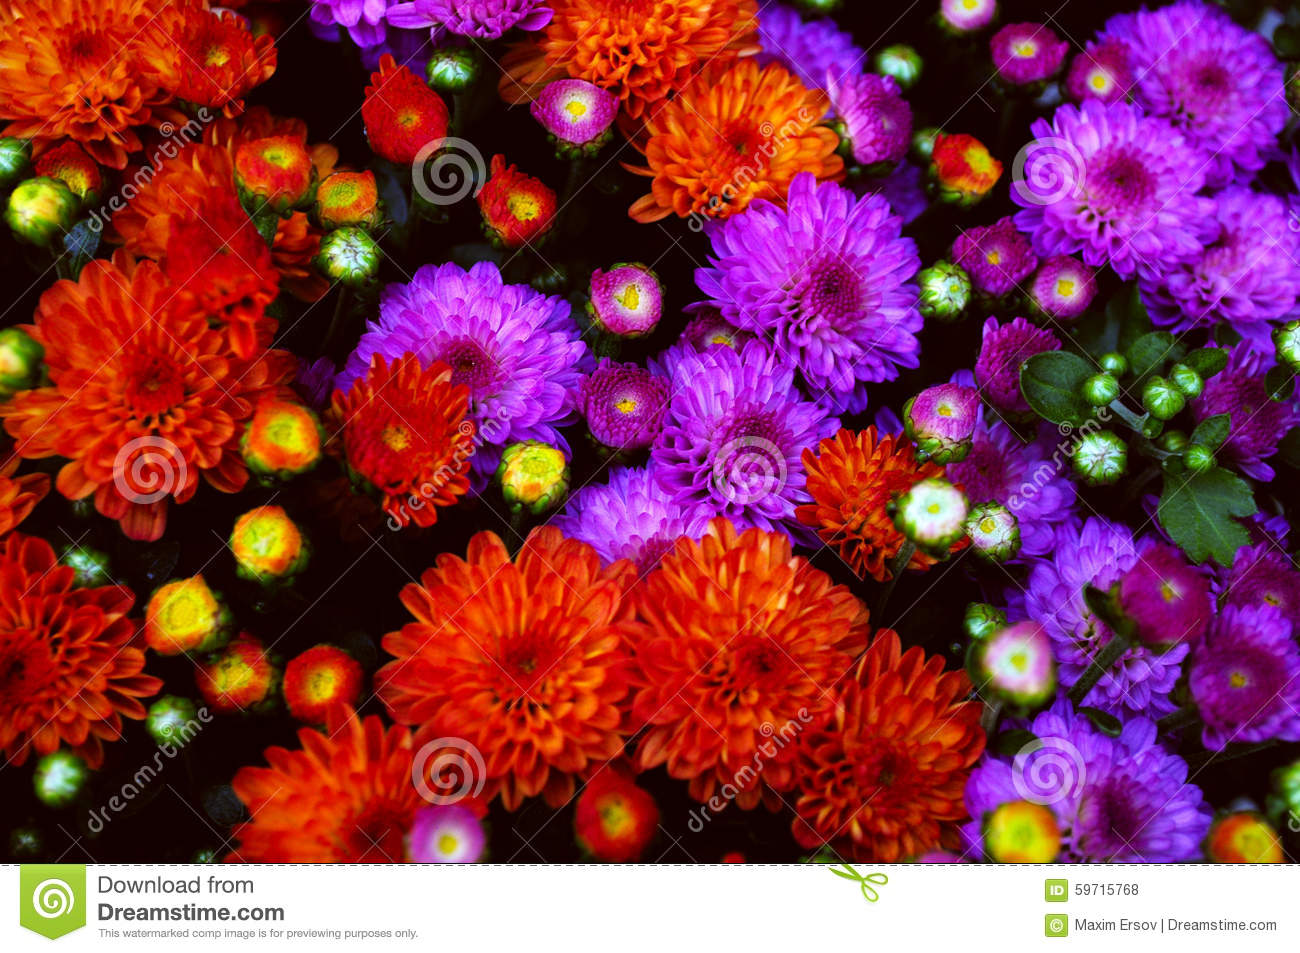 Flowers fall home design ideas beautiful fall flowers stock photo image 45504442 izmirmasajfo